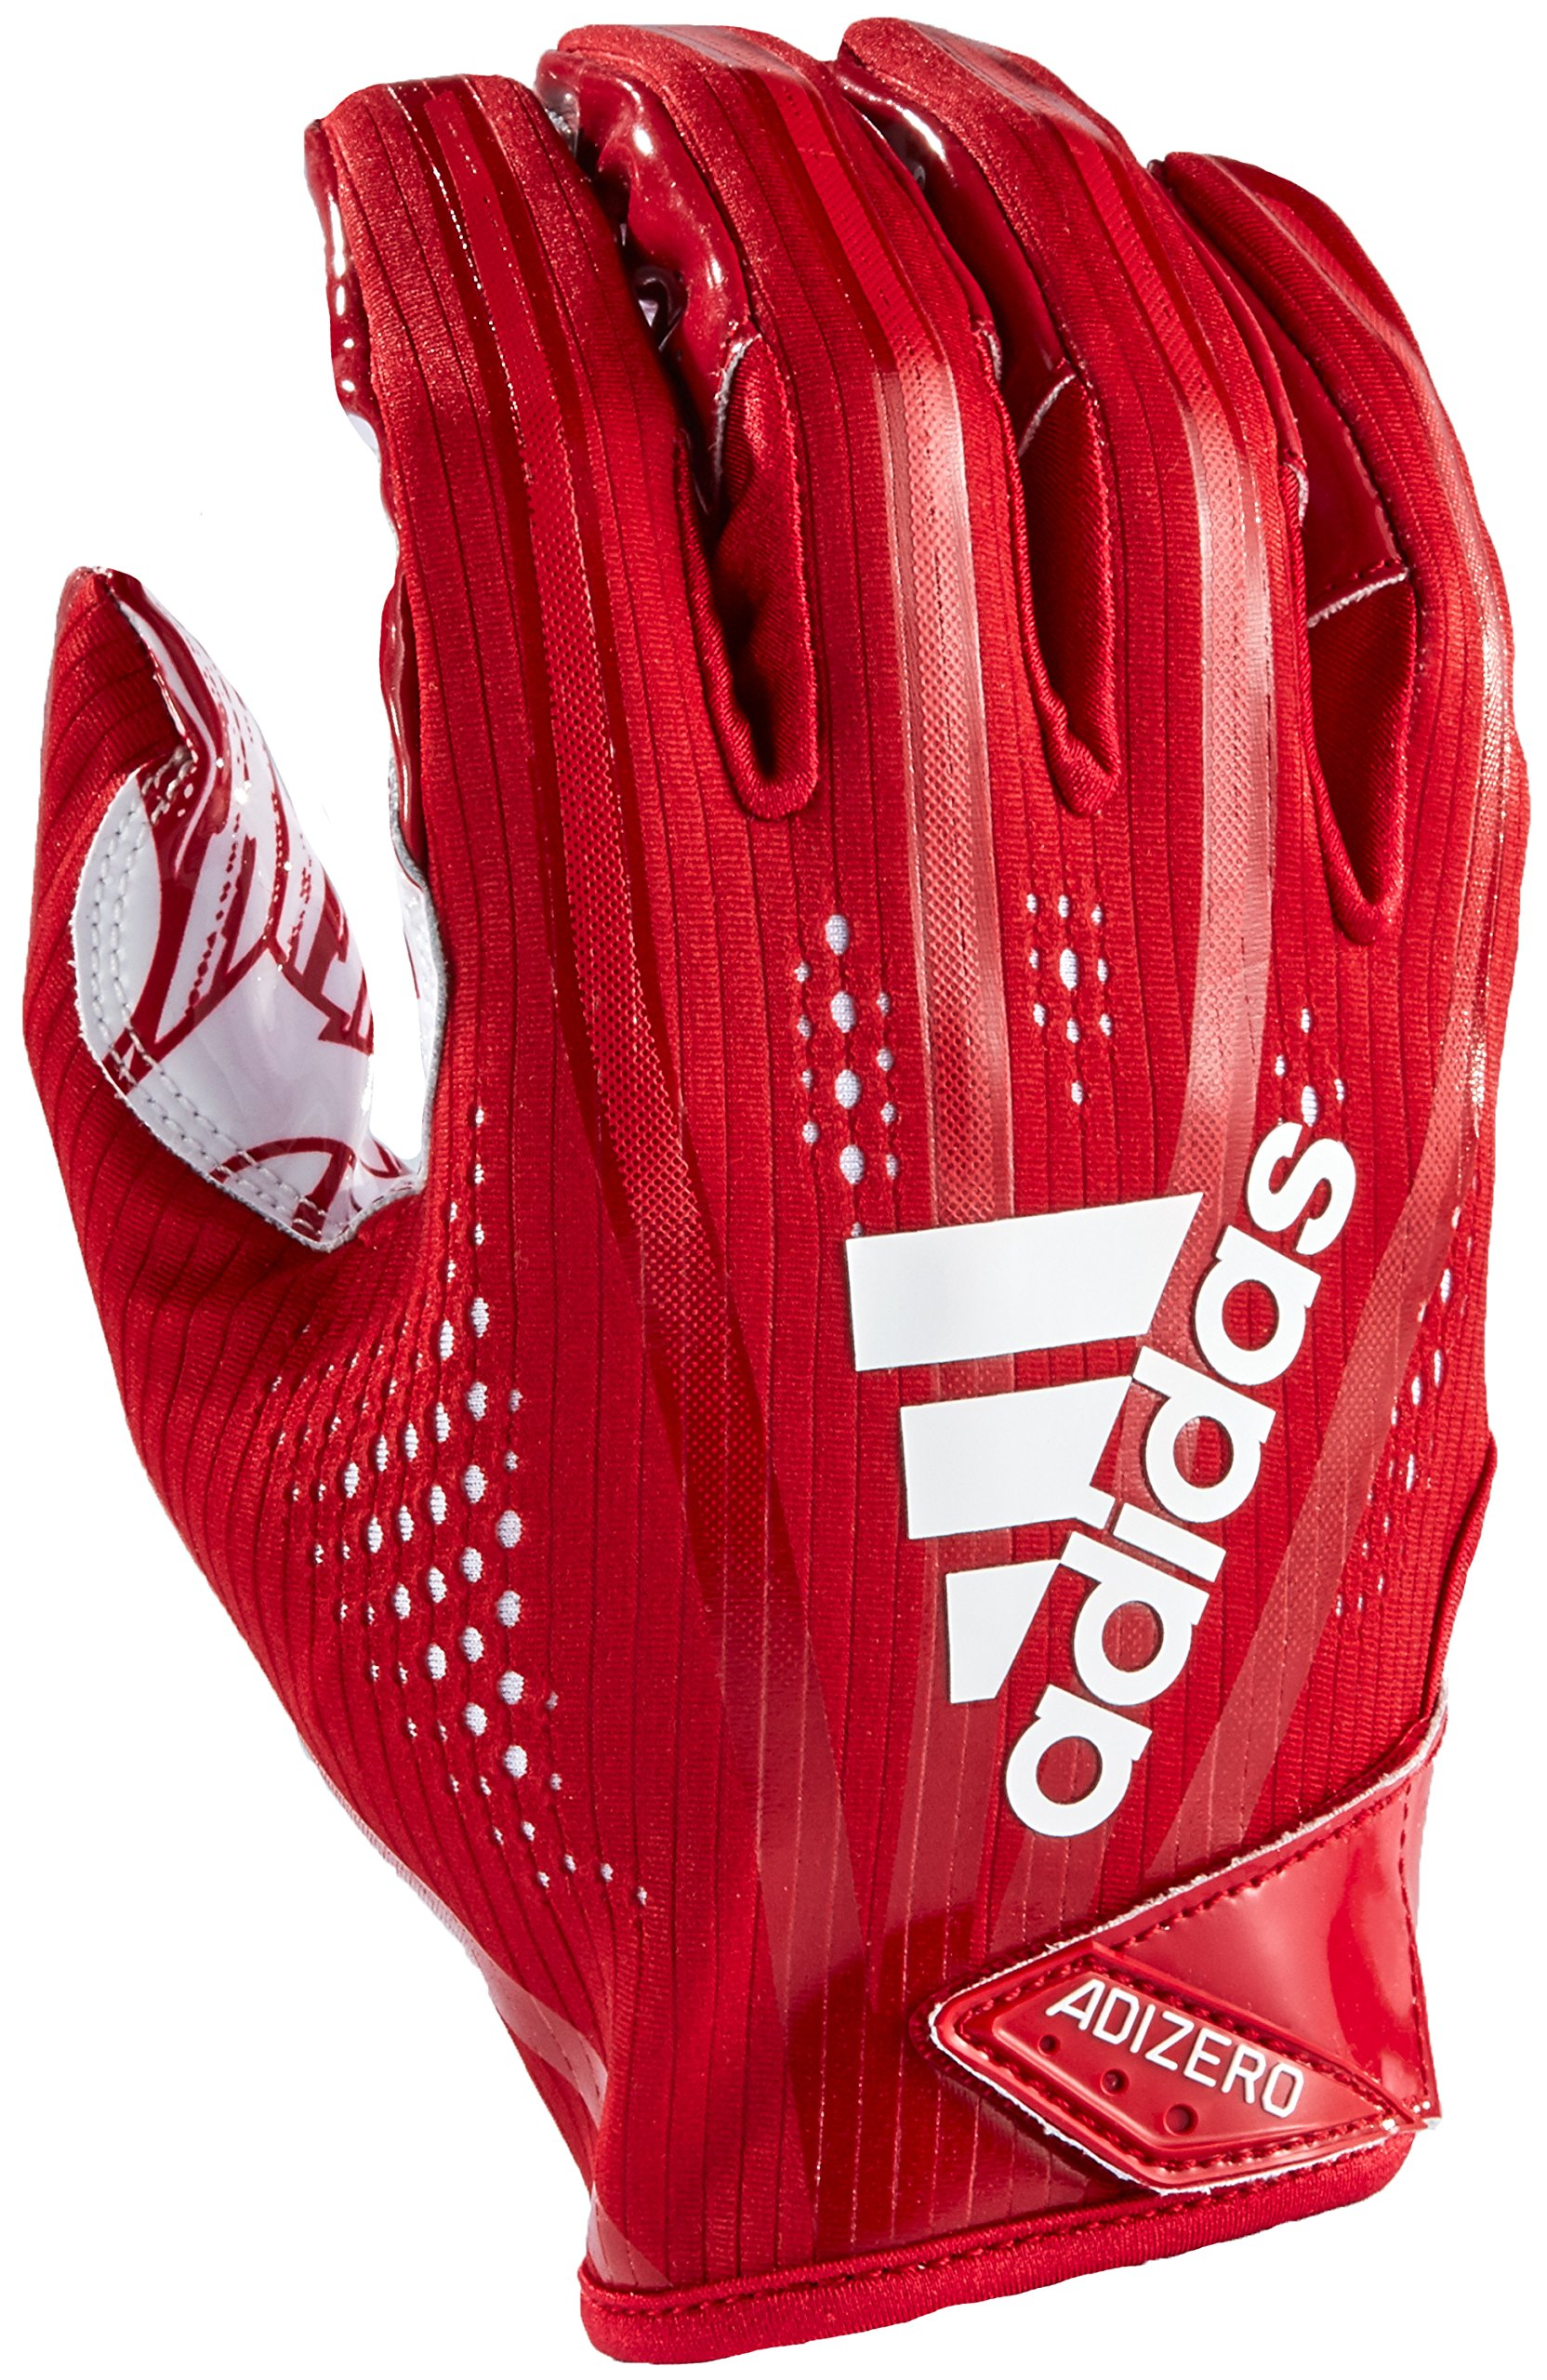 adidas AF1000 Adizero 7.0 Receiver's Gloves, Red, Large by adidas (Image #1)